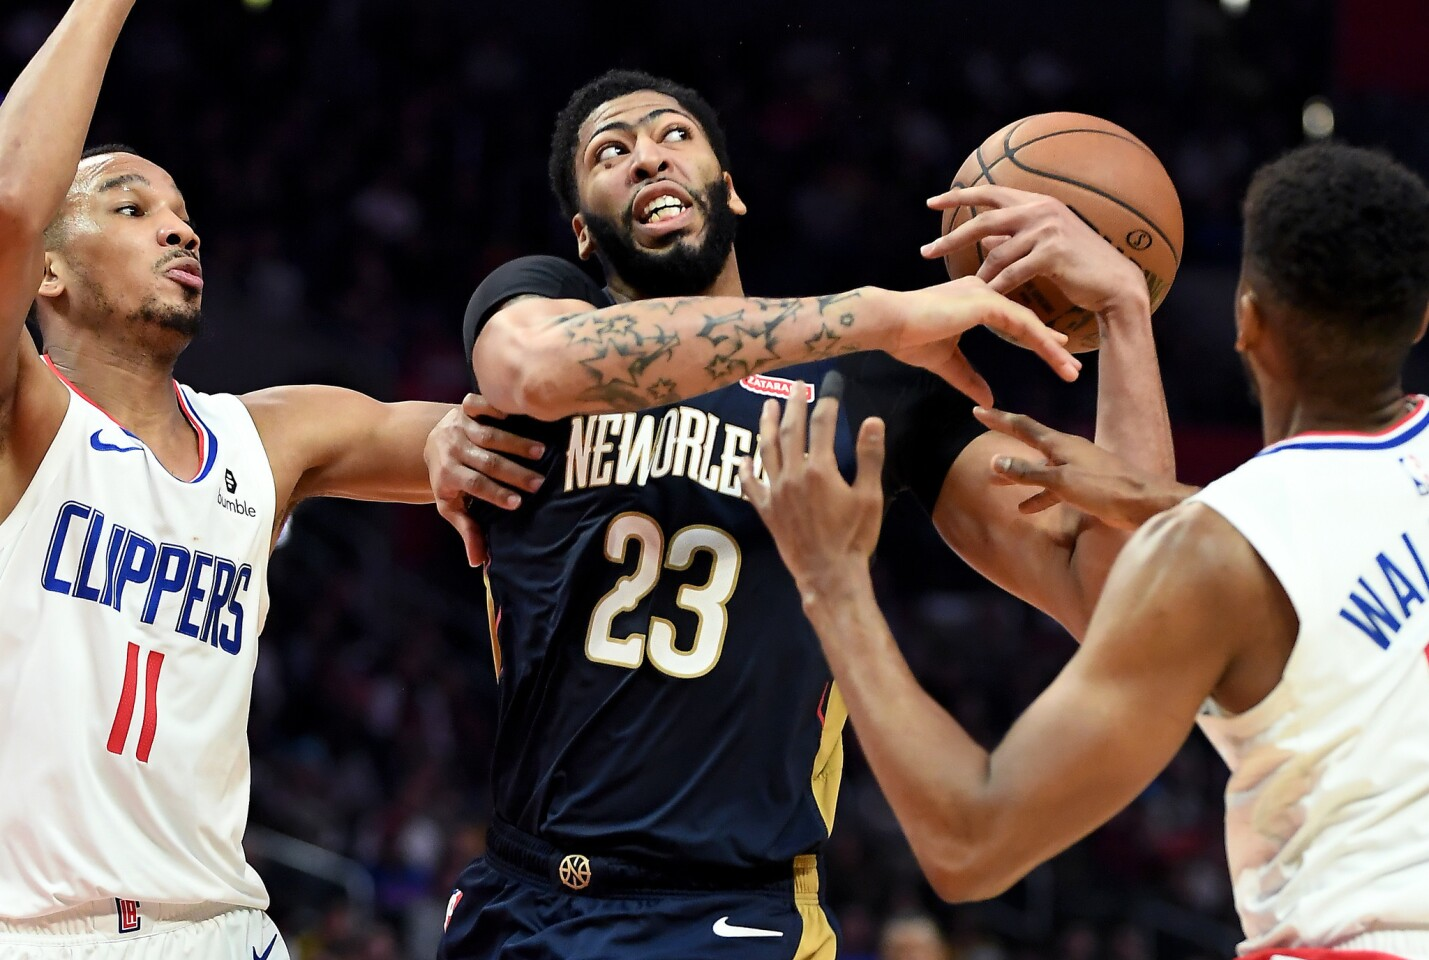 Pelicans Anthony Davis is fouled by Clippers Tyrone Wallace, right, as Avery Bradley helps on defense in the 4th quarter at the Staples Center Monday.